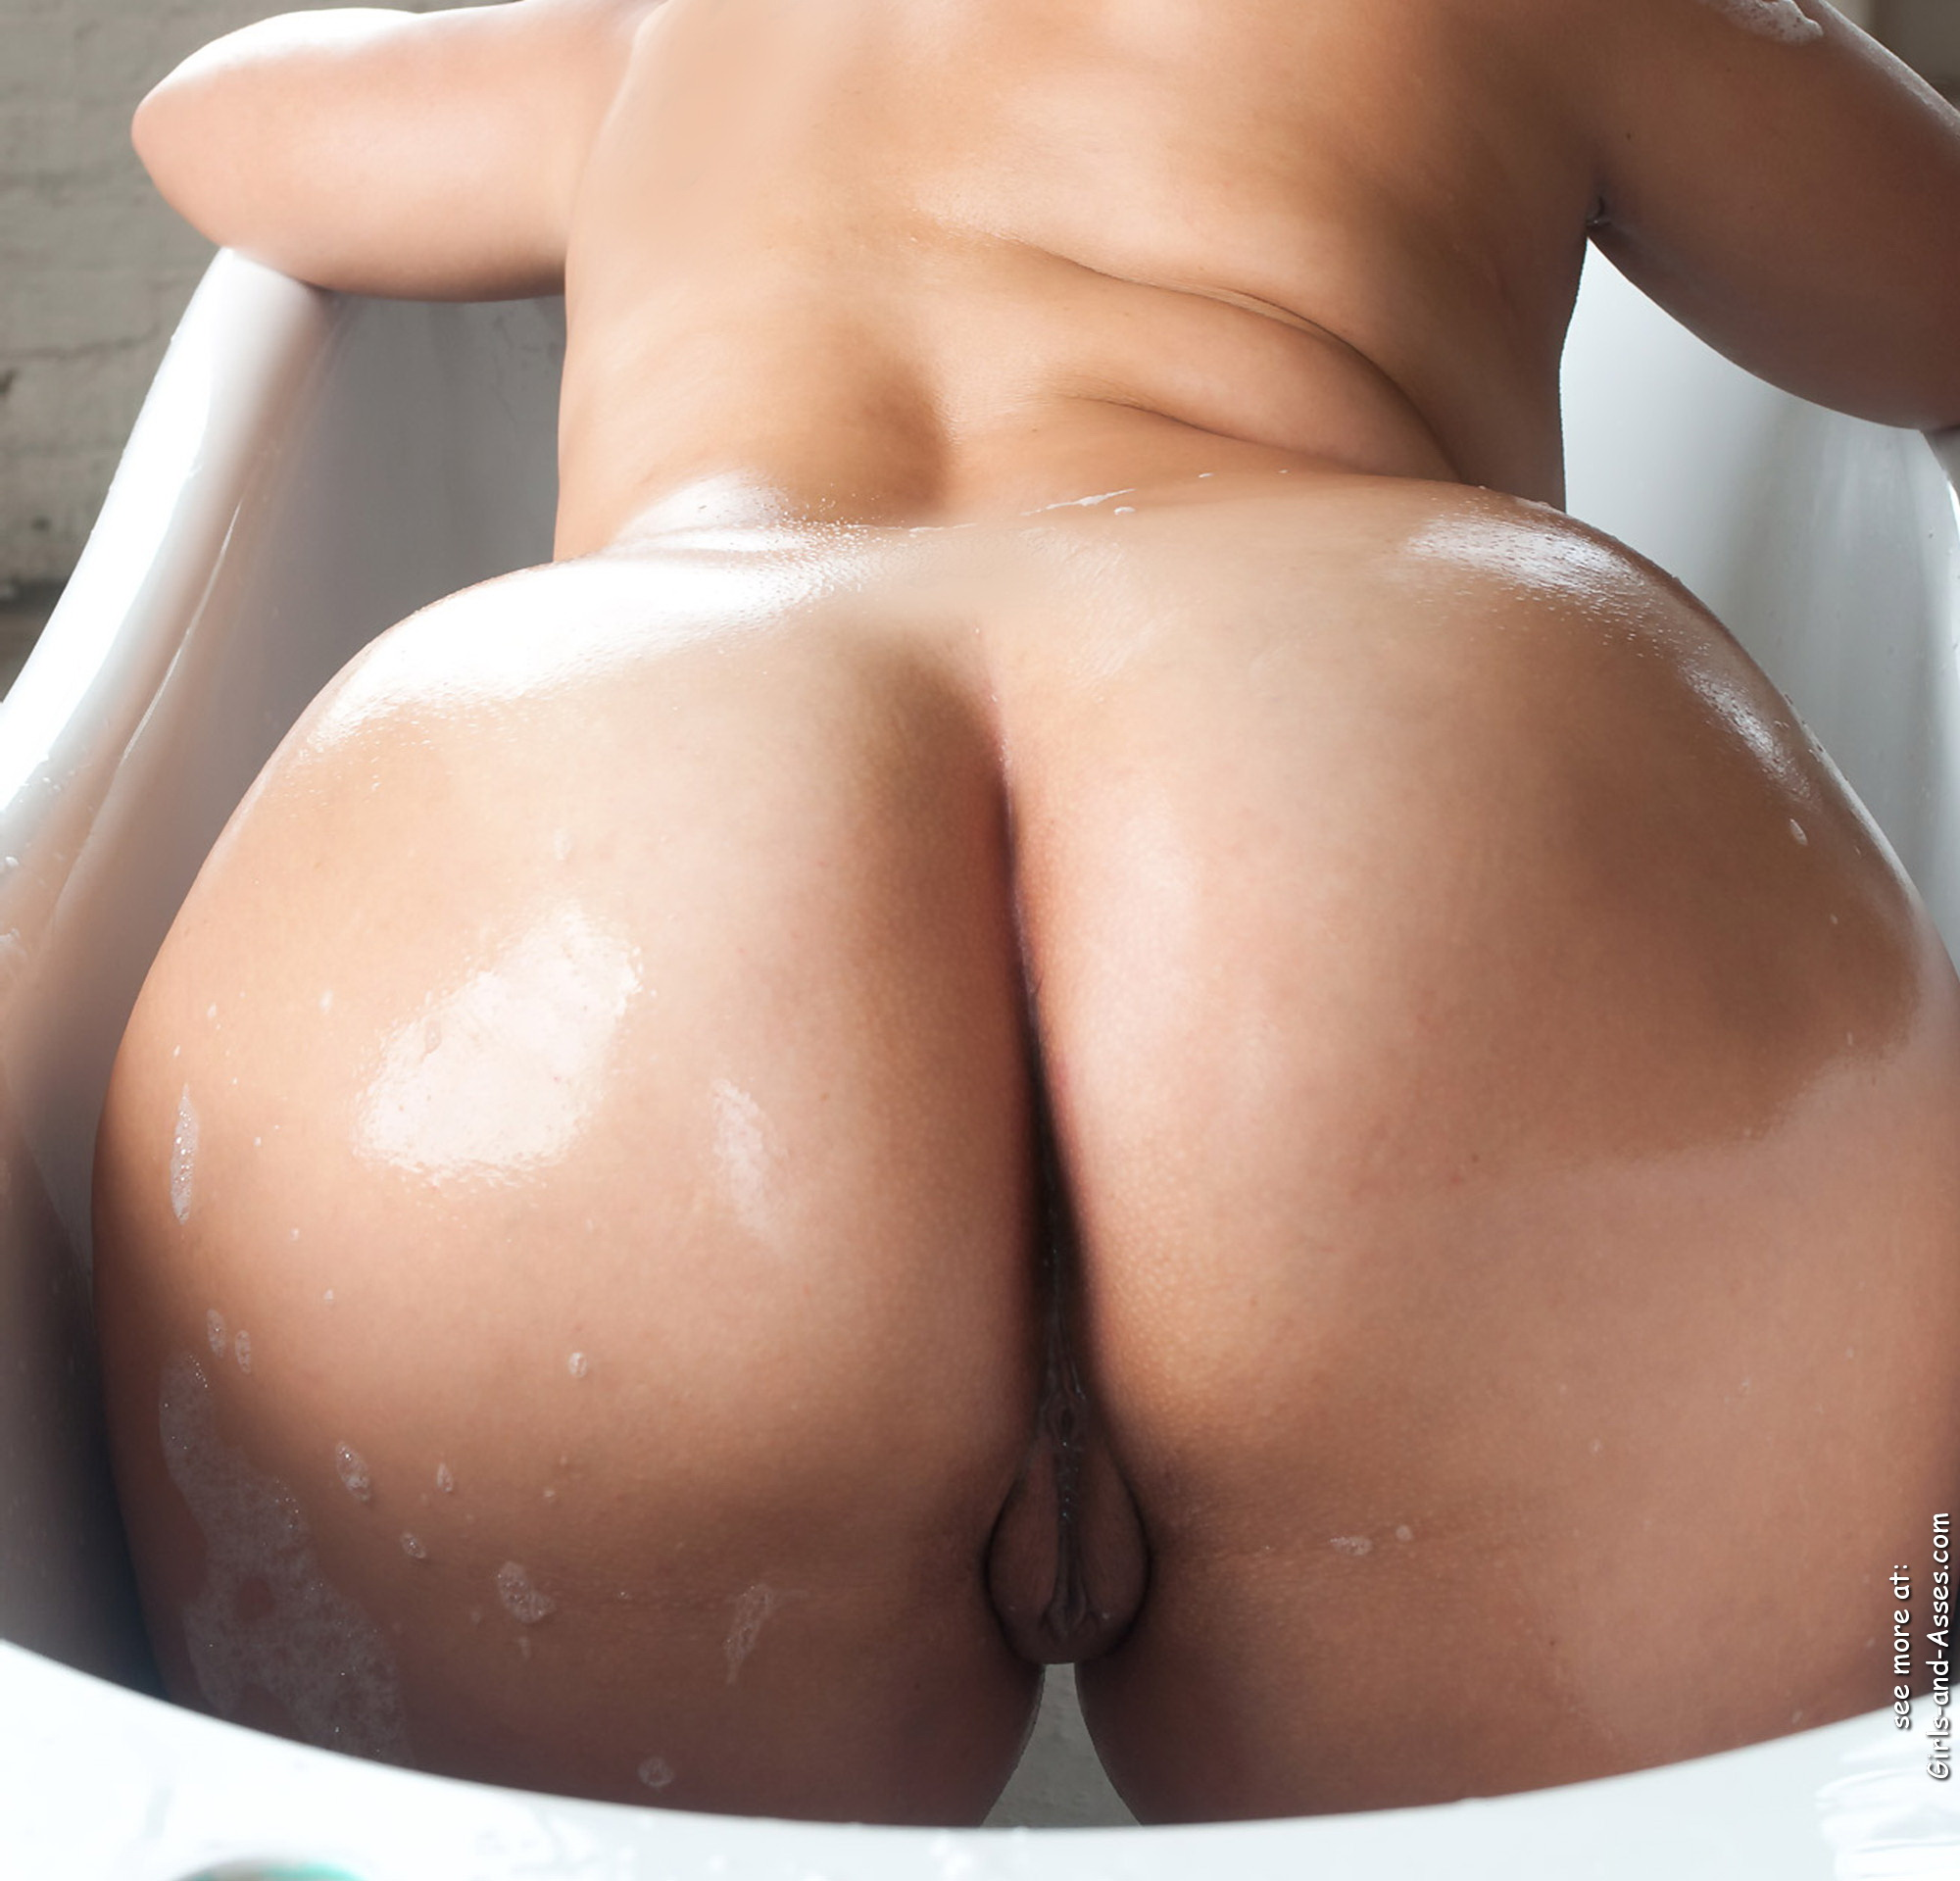 nude girl with massive ass in the bathtub photography 01648